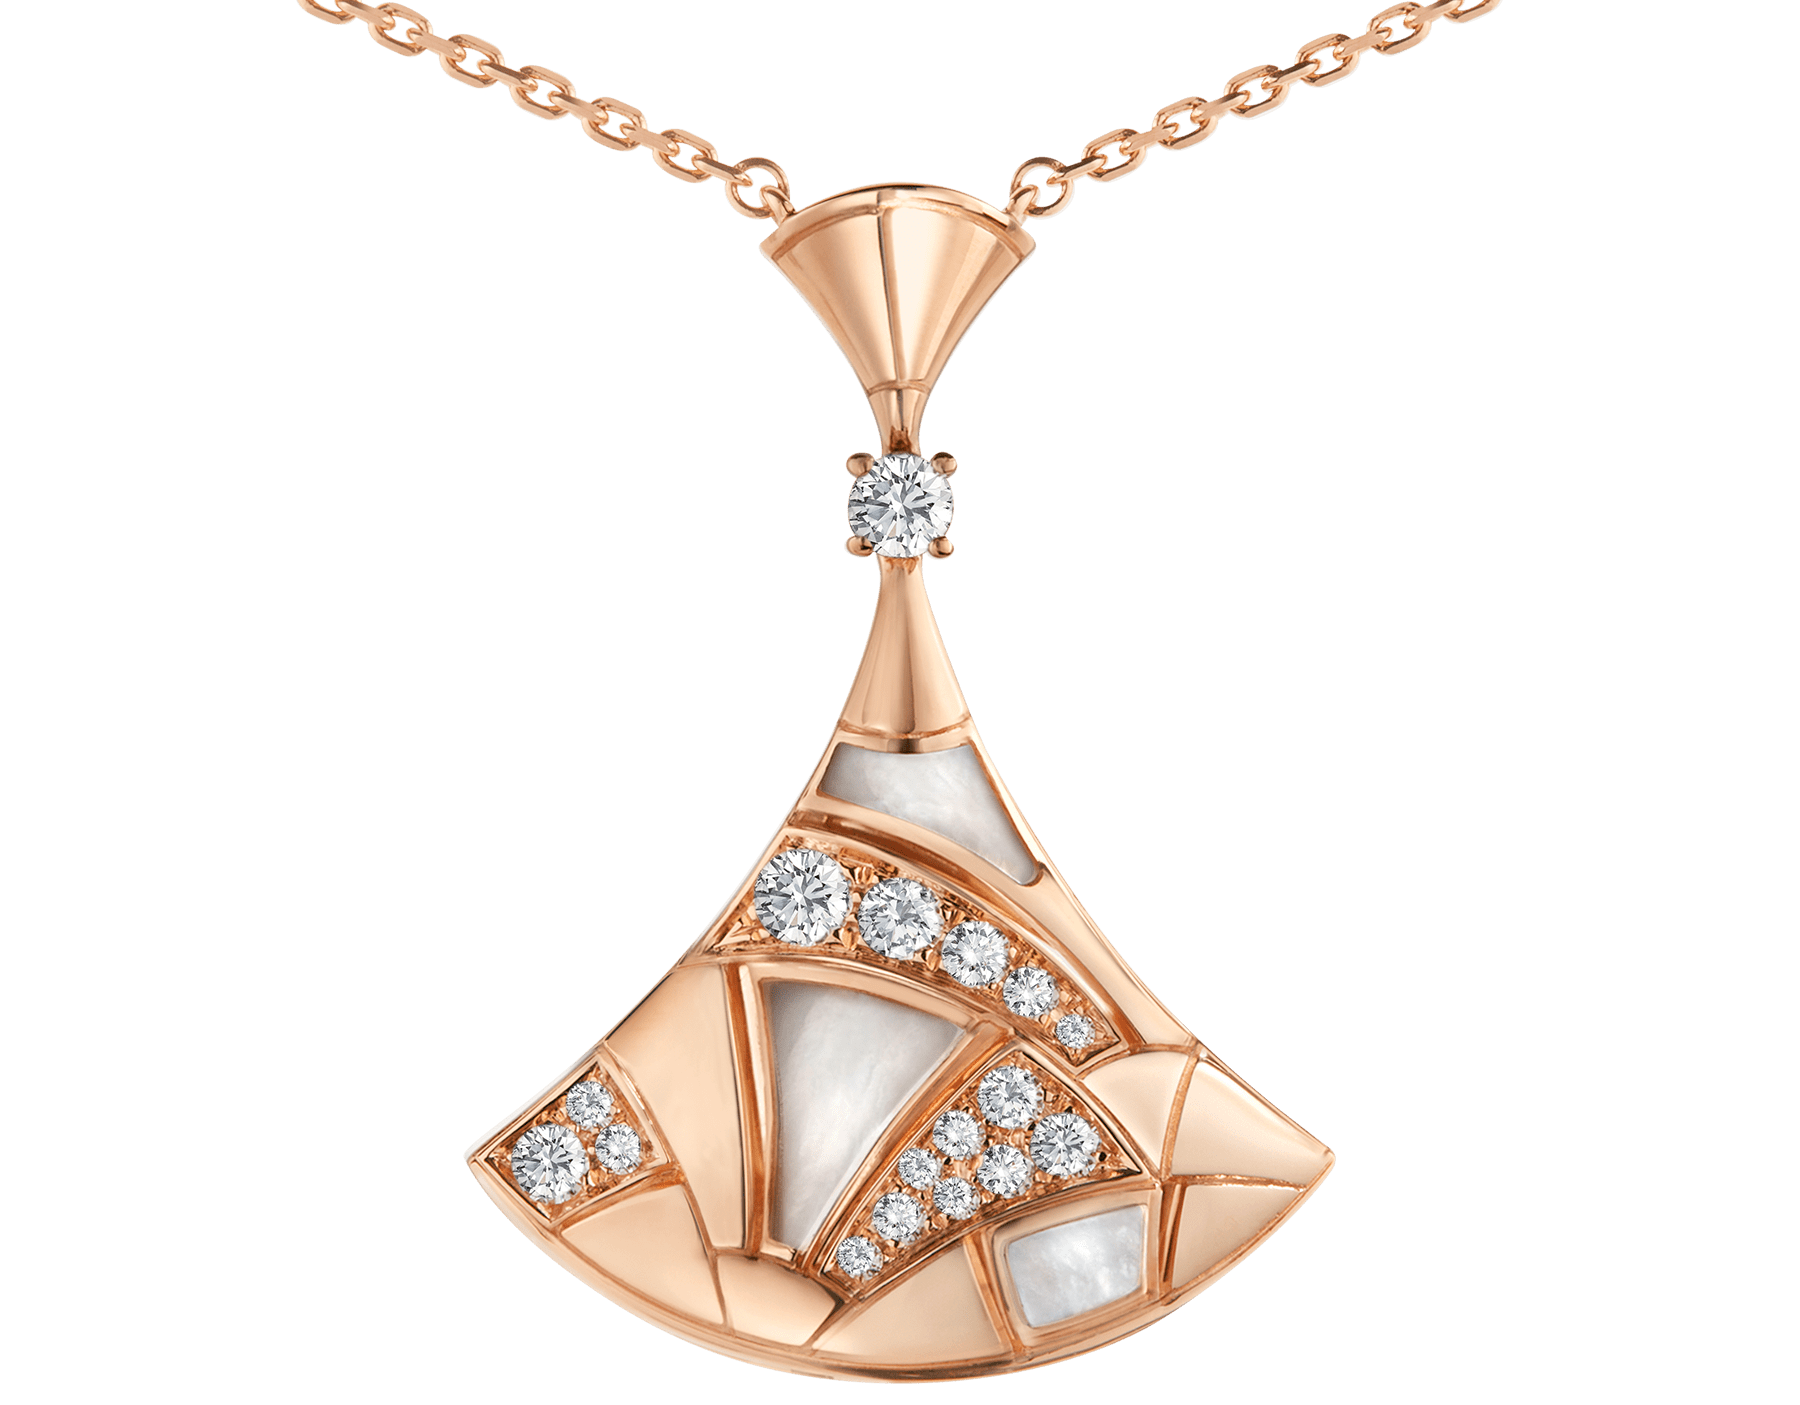 DIVAS' DREAM necklace in 18 kt rose gold with pendant set with mother-of-pearl elements, one diamond and pavé diamonds. 350065 image 3